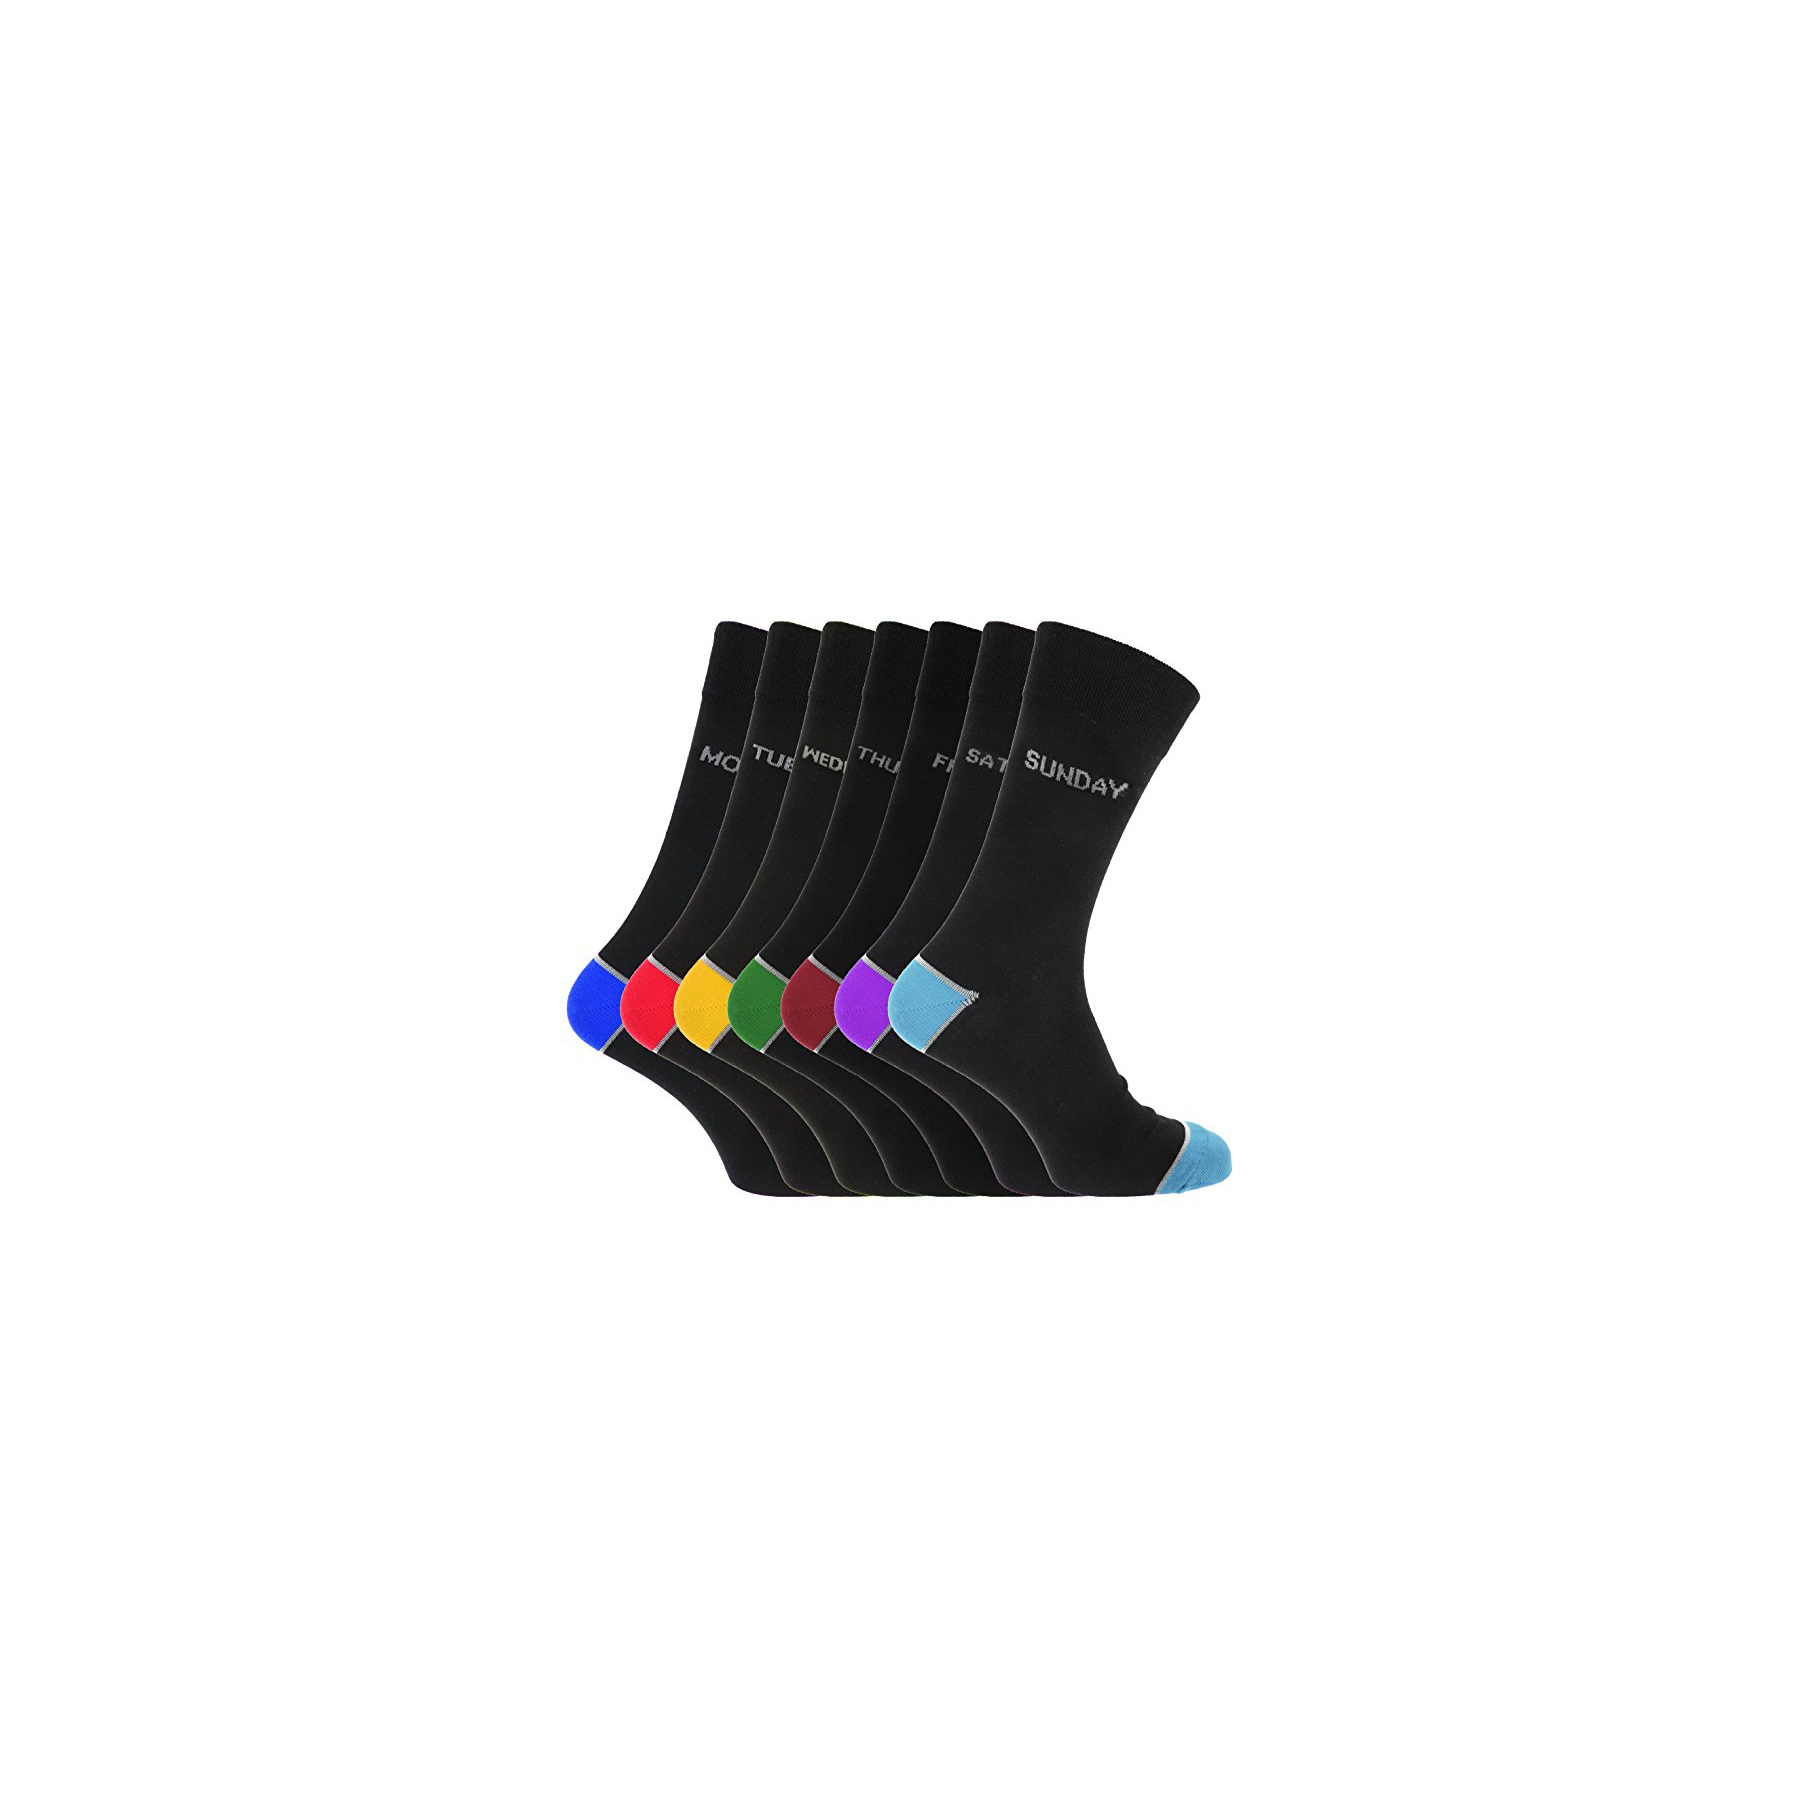 Men's Days of the Week Socks